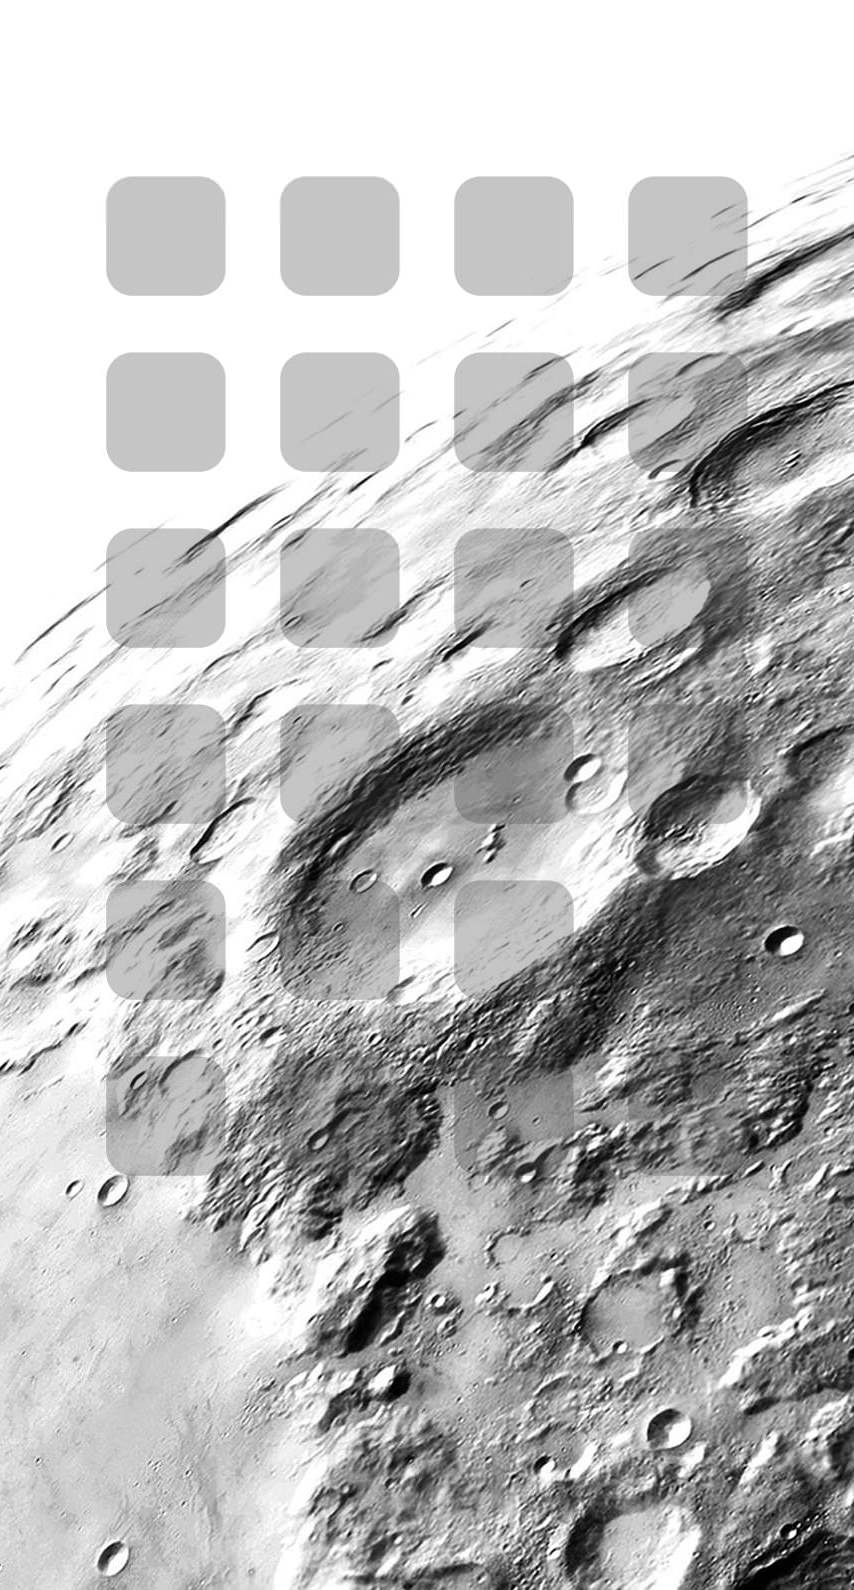 the next iphone shelf moon monochrome gray wallpaper sc iphone6s 13100